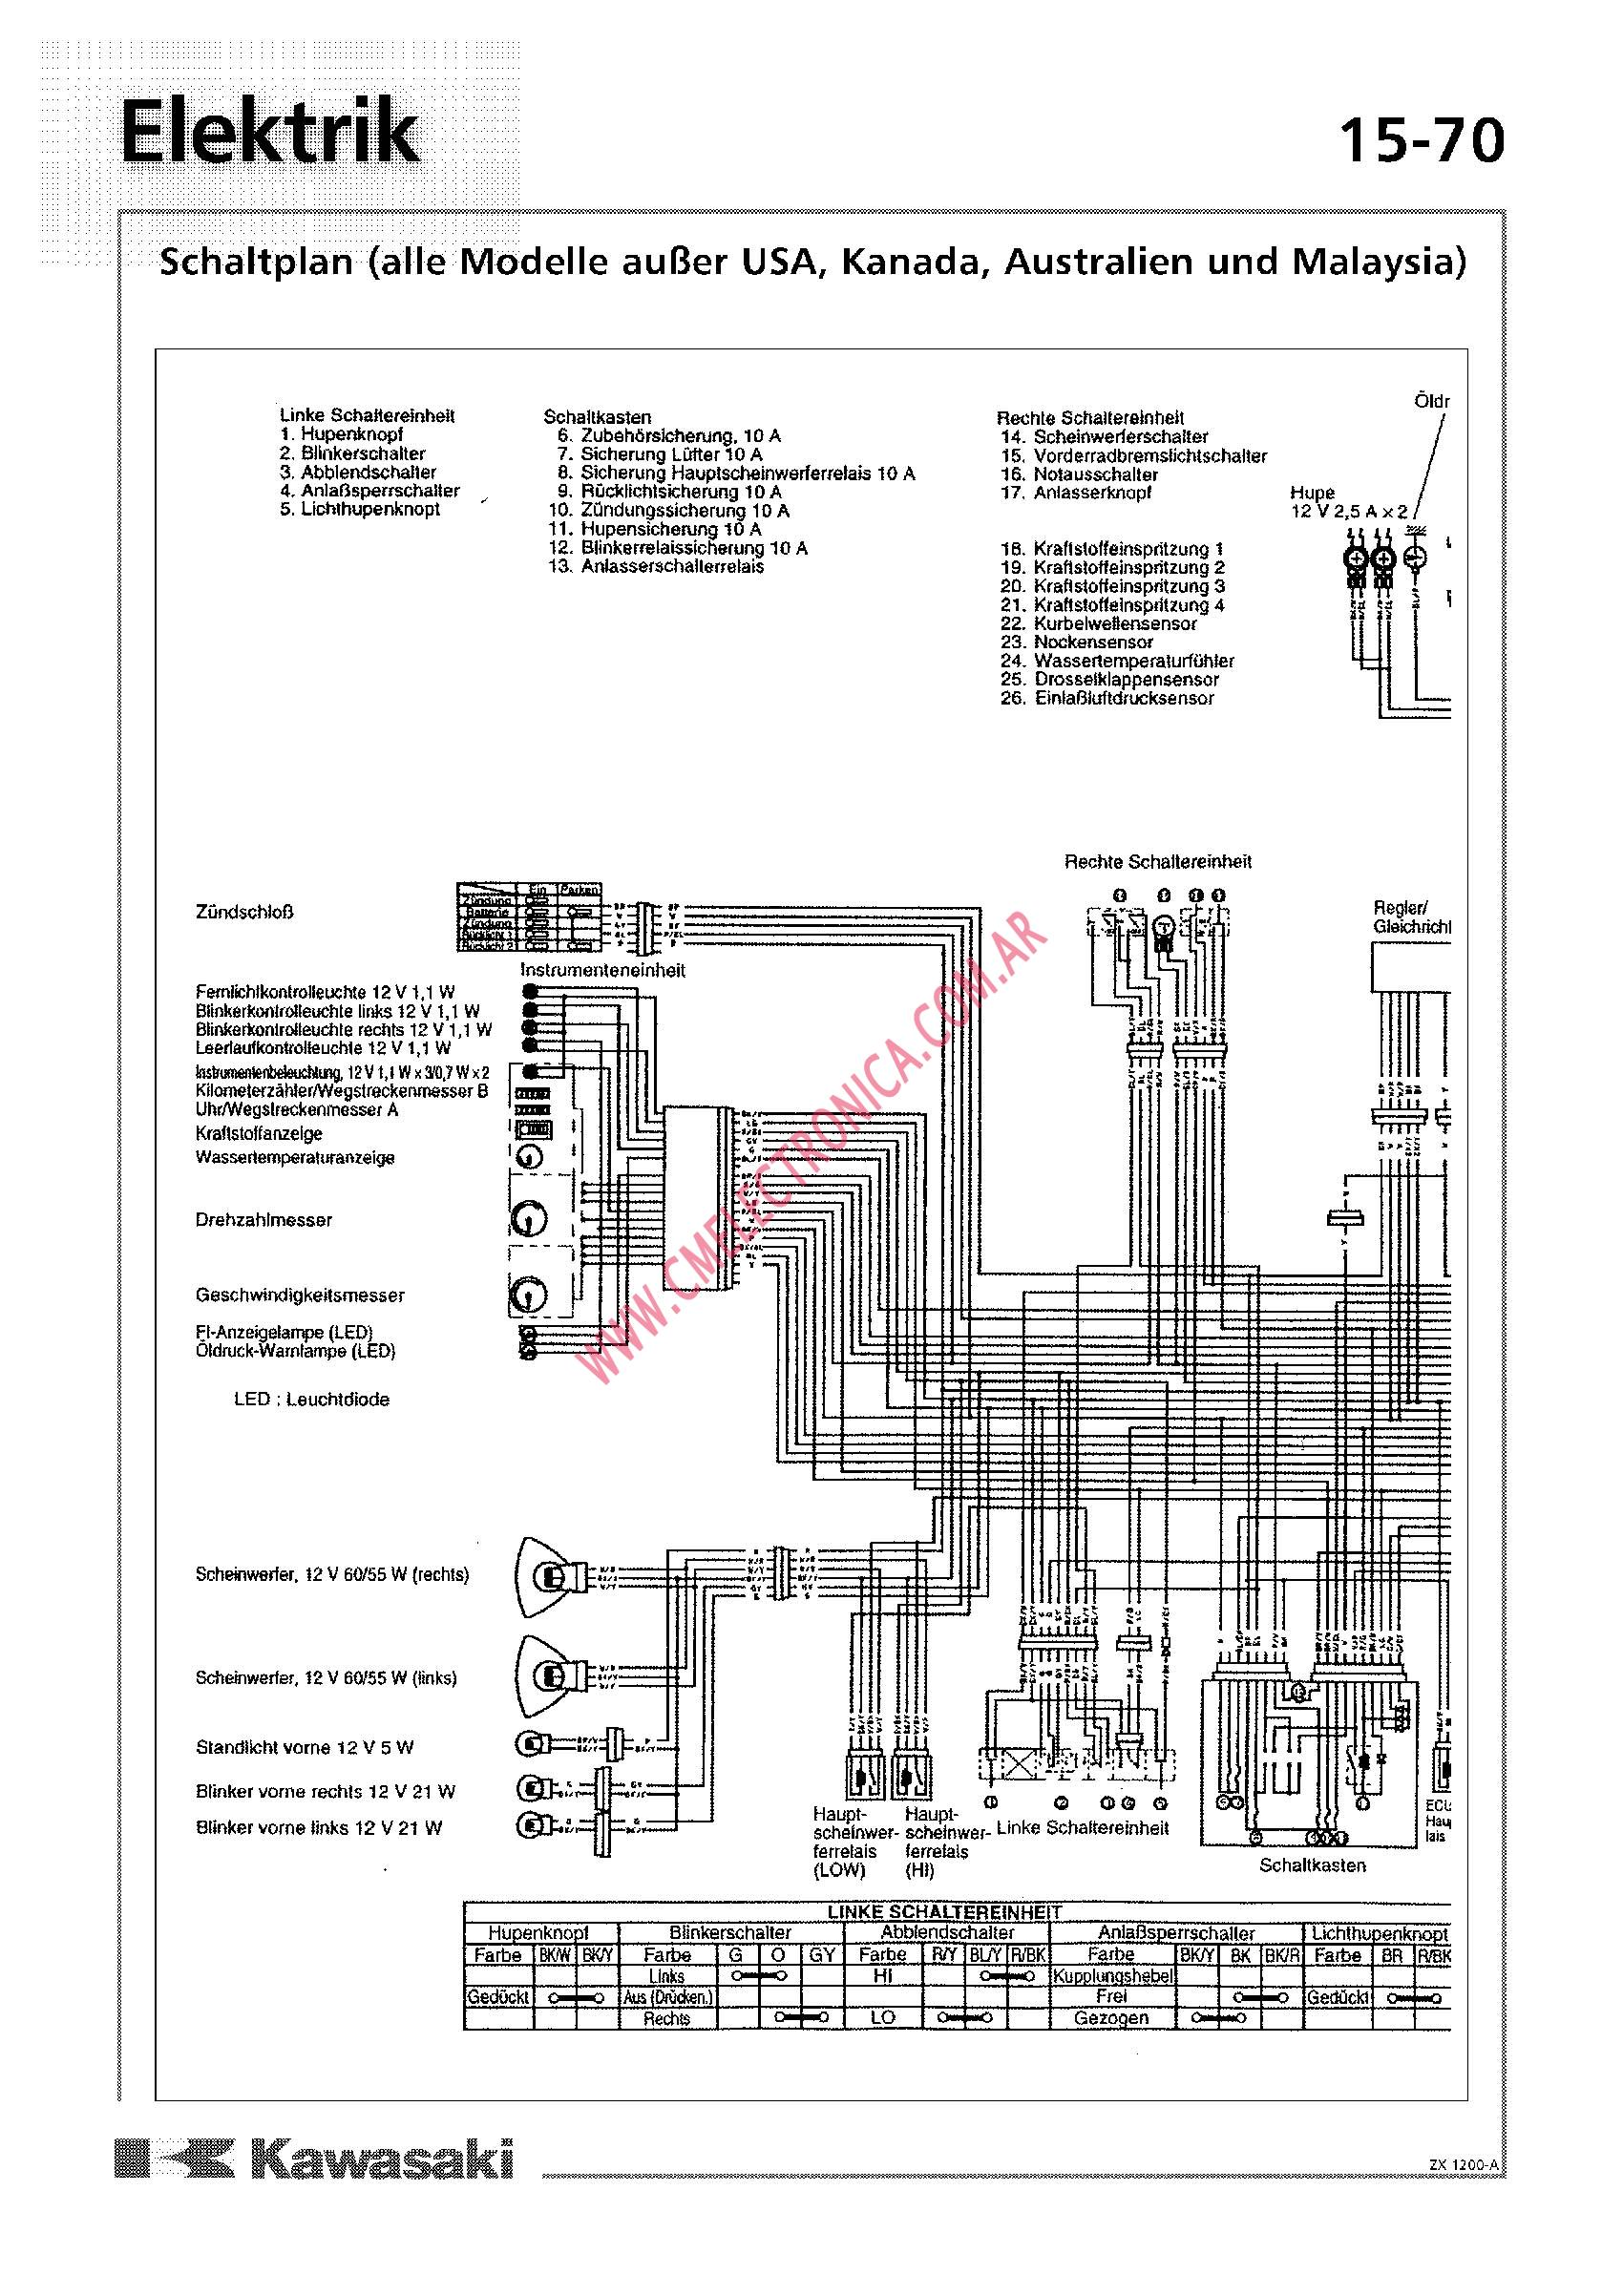 Wiring Diagram Zx12r Diagrams 07 Jeep Liberty Private Sharing About Kawasaki And Schematics Zx 12r Review